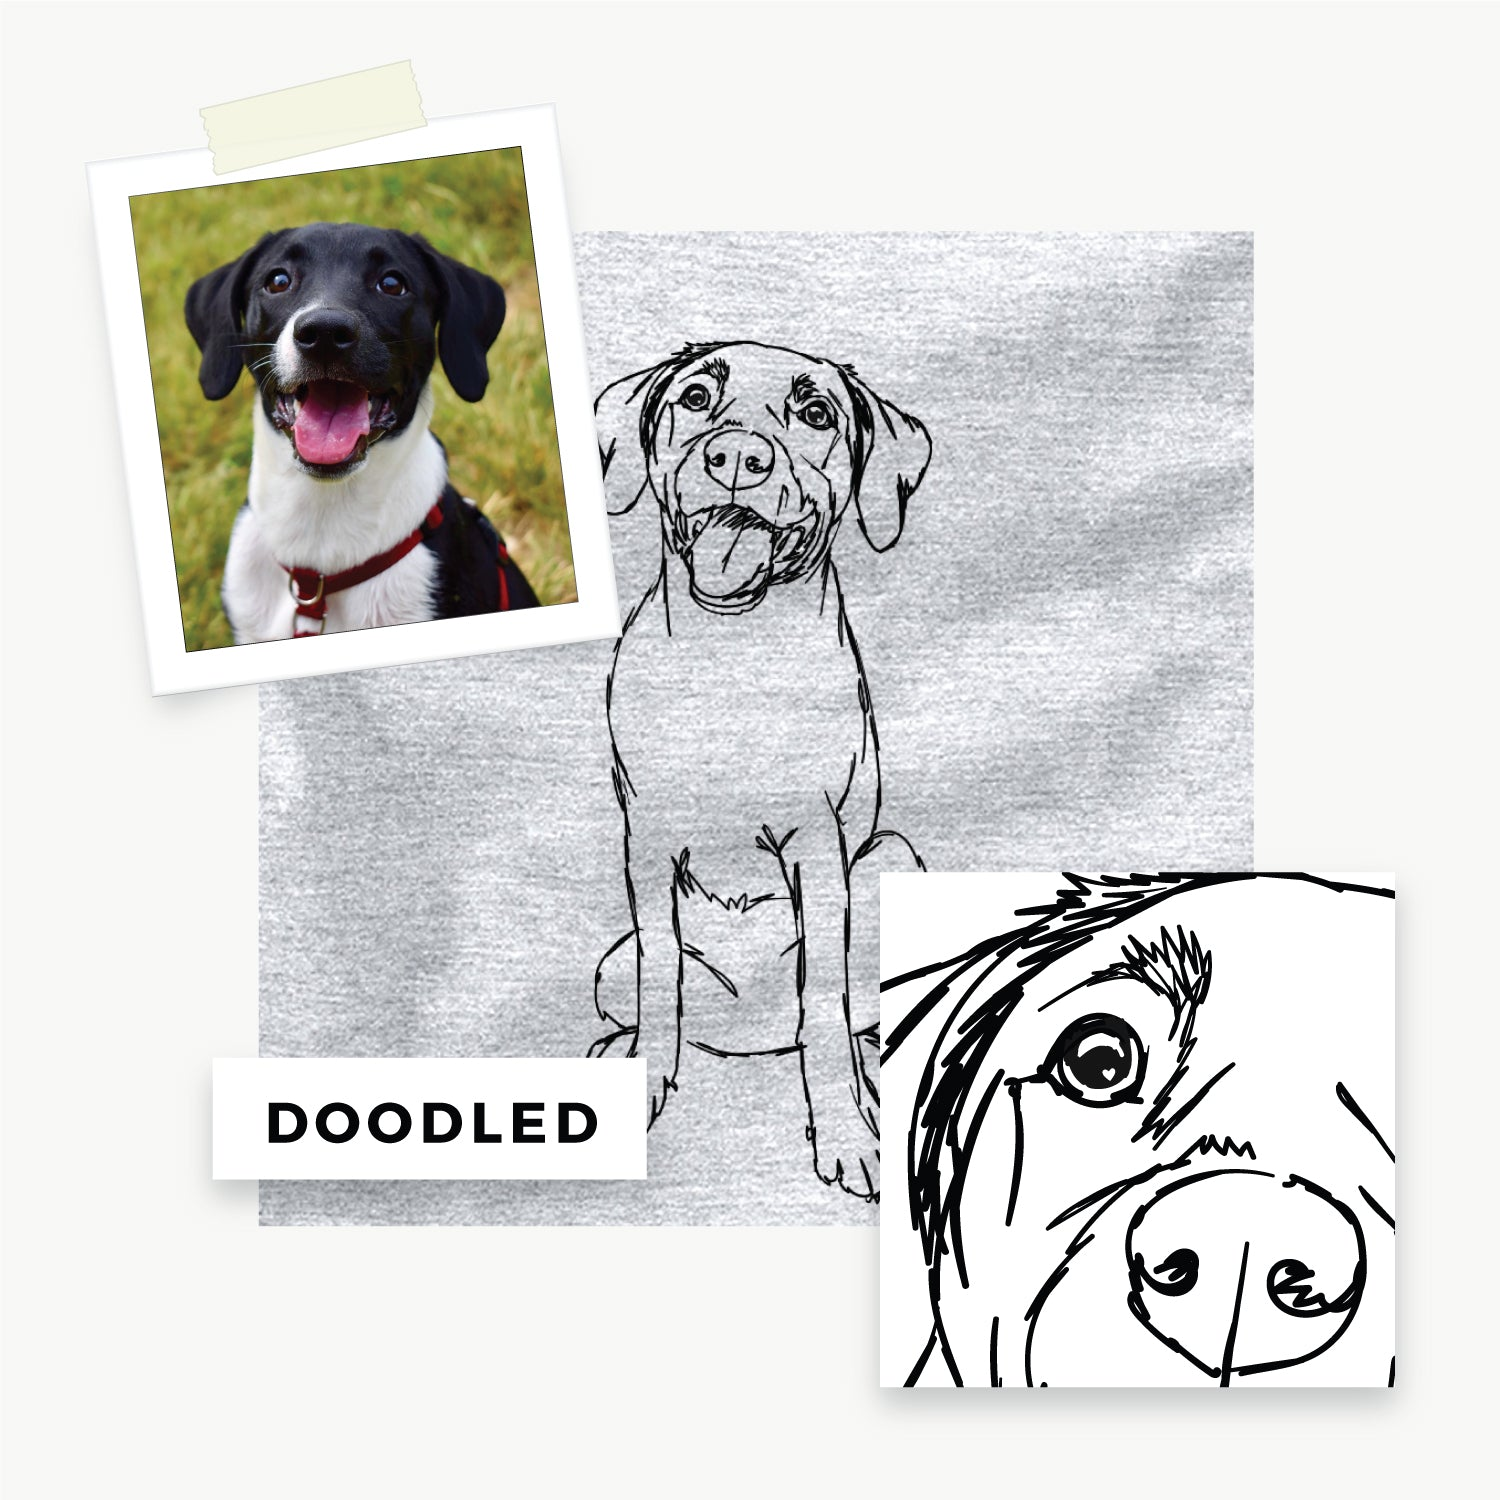 Your Pet Doodled and on a Shirt!